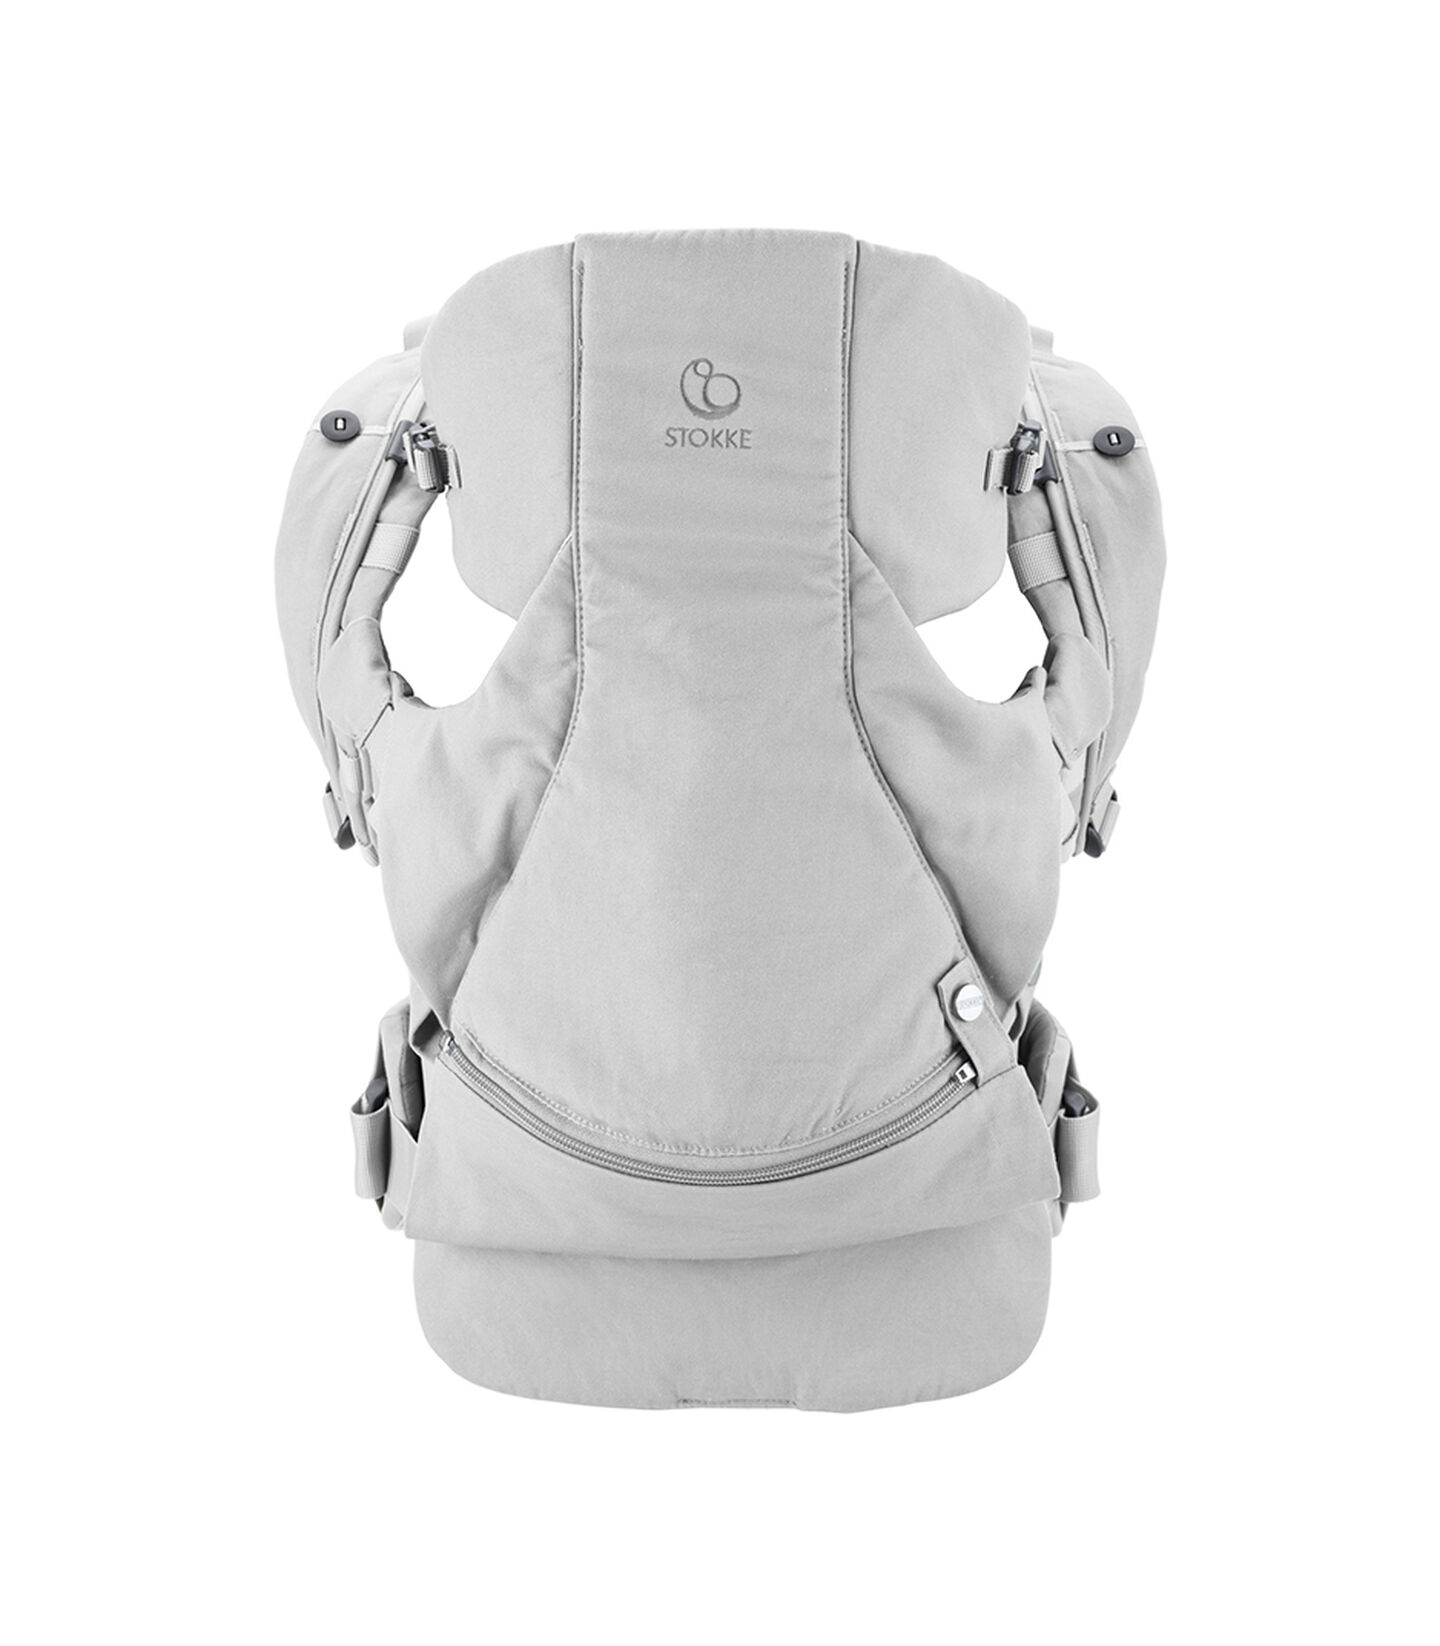 Stokke® MyCarrier™ OCS Bauchtrage Grey, Grey, mainview view 2